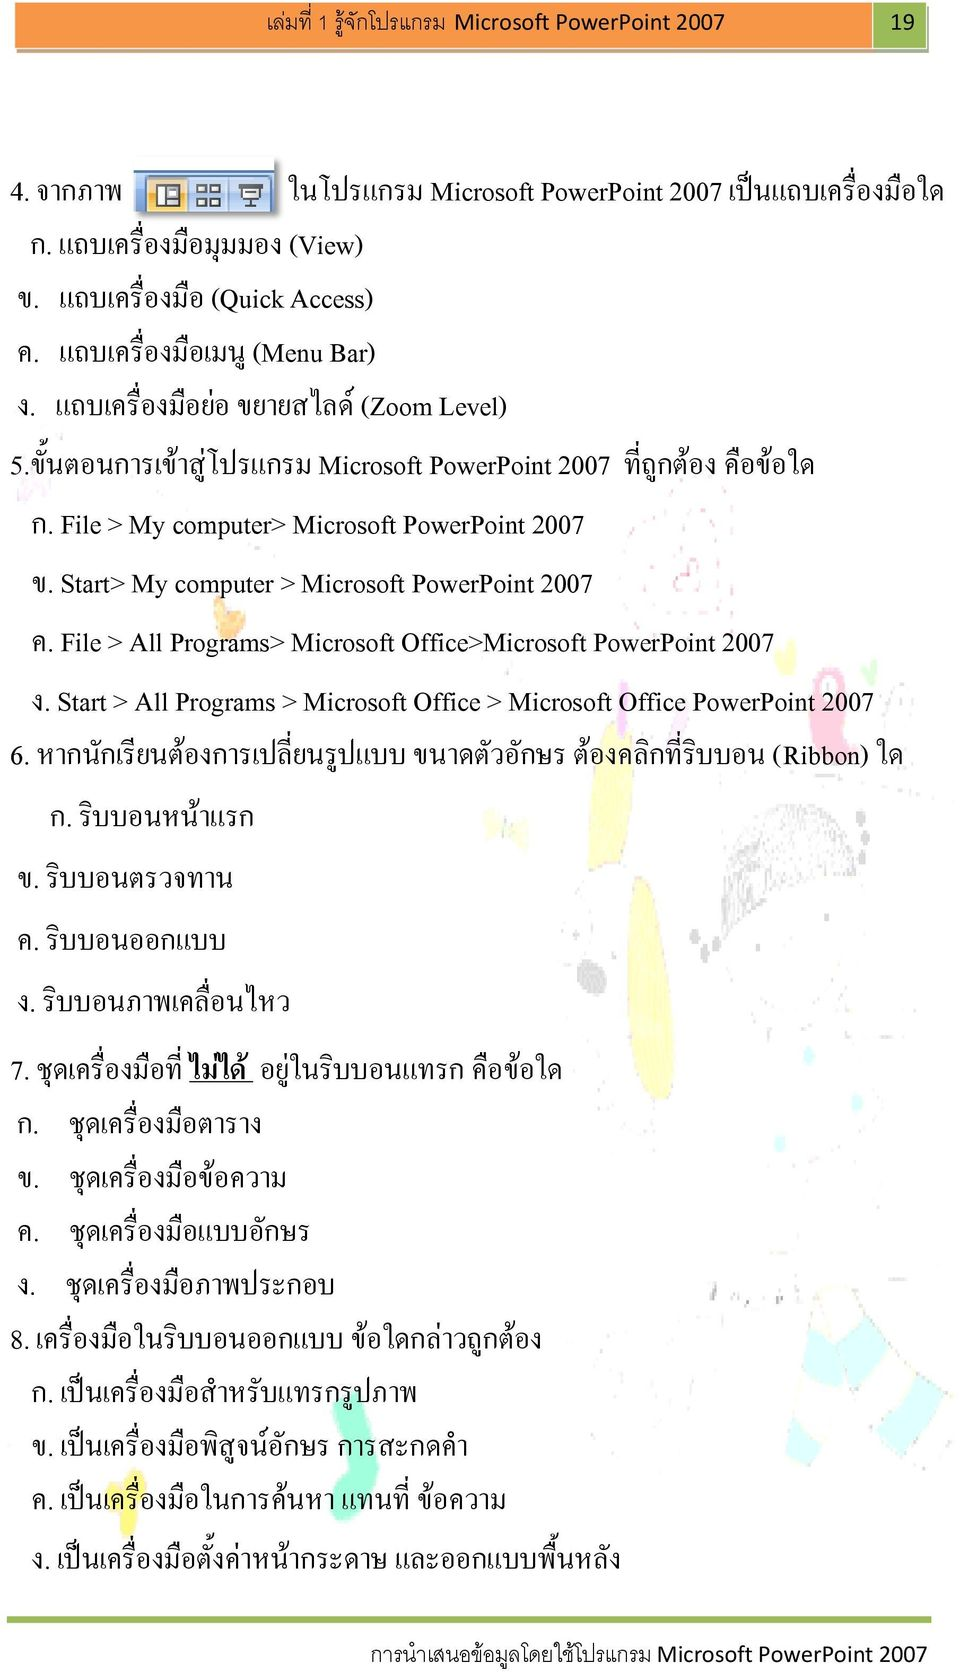 Start> My computer > Microsoft PowerPoint 2007 ค. File > All Programs> Microsoft Office>Microsoft PowerPoint 2007 ง. Start > All Programs > Microsoft Office > Microsoft Office PowerPoint 2007 6.